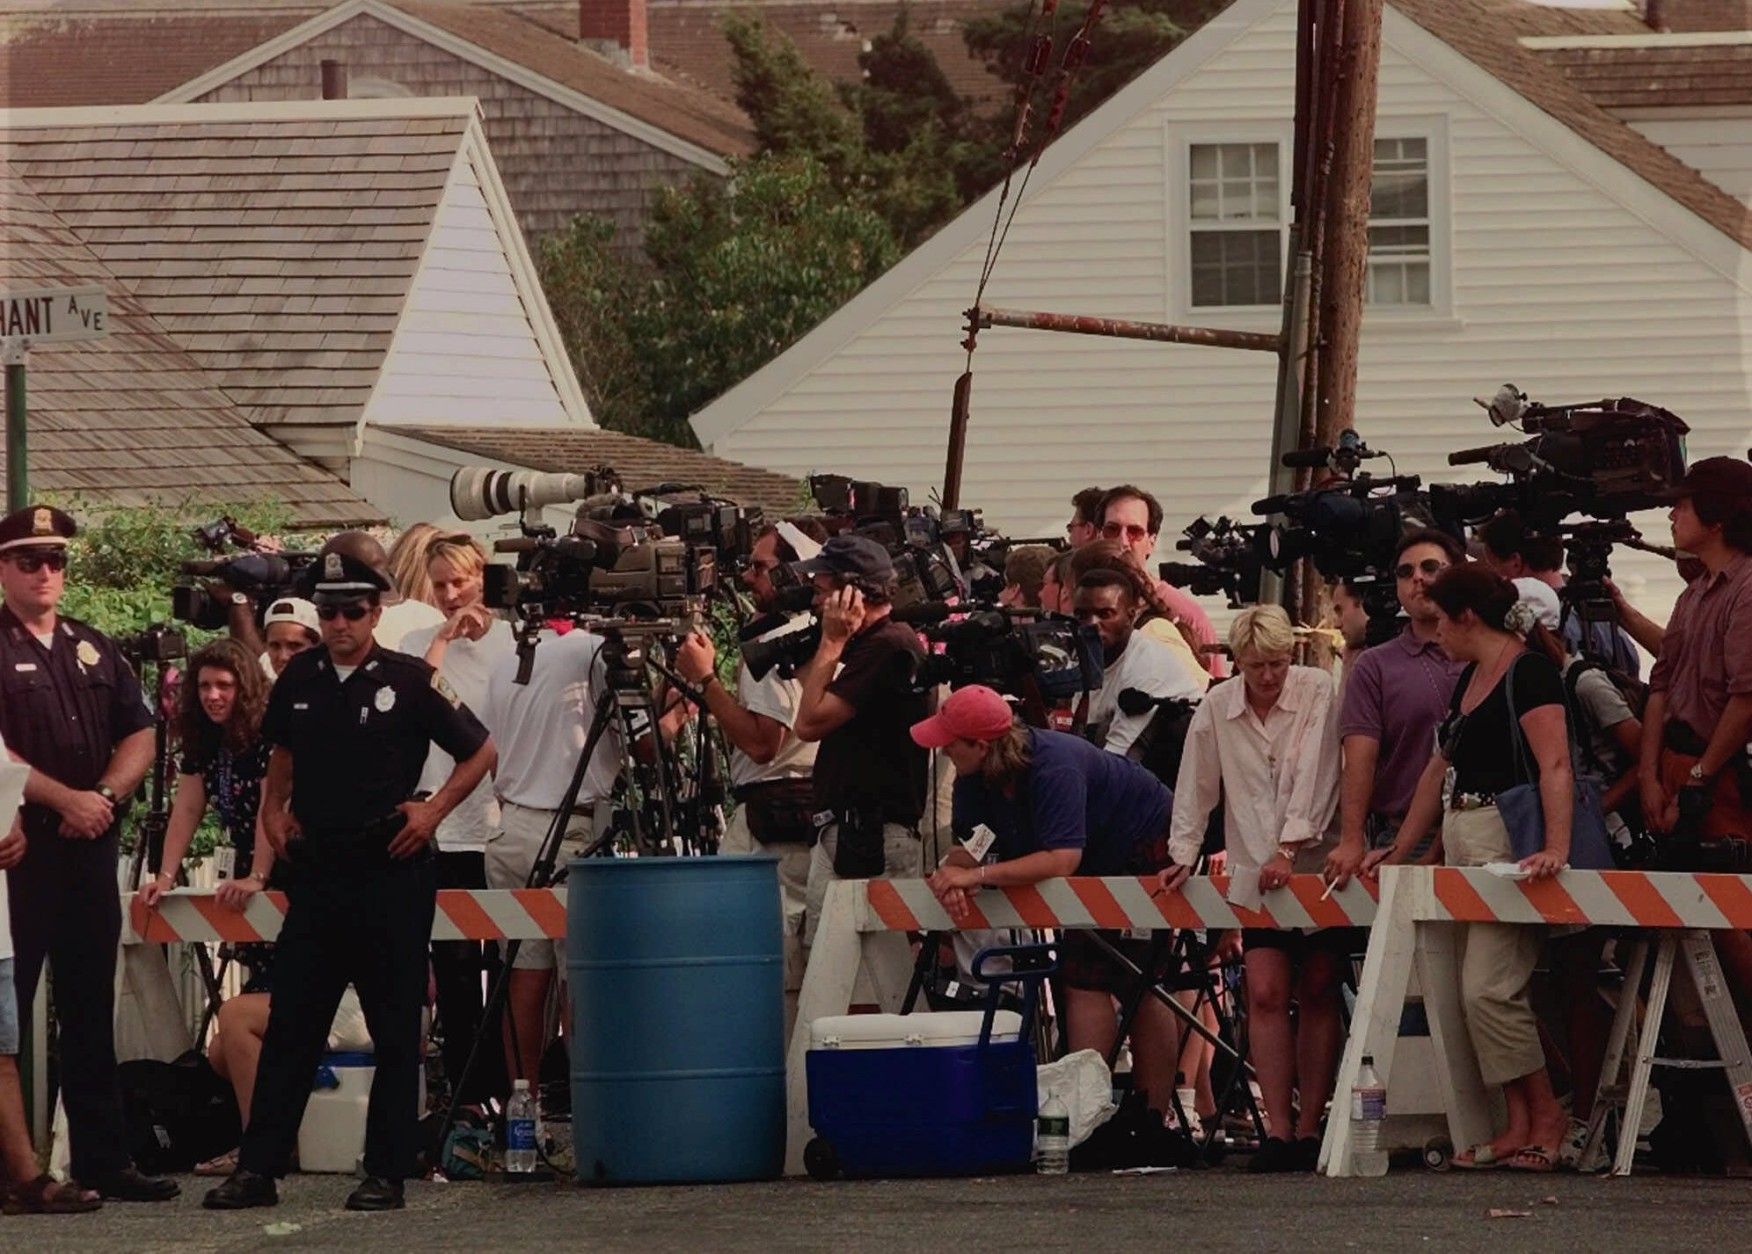 In 1999, John F. Kennedy Jr., his wife, Carolyn, and her sister, Lauren Bessette, died when their single-engine plane, piloted by Kennedy, plunged into the Atlantic Ocean near Martha's Vineyard, Massachusetts. Reporters surround the Kennedy Compound in Hyannisport, Mass., Saturday, July 17, 1999 after the wedding of Rory Kennedy, daughter of the late Robert Kennedy, was postponed after John F. Kennedy Jr., his wife and her sister were reported missing after their plane disappeared Friday night flying into Martha's Vineyard for the wedding. (AP Photo/Jim Cole)